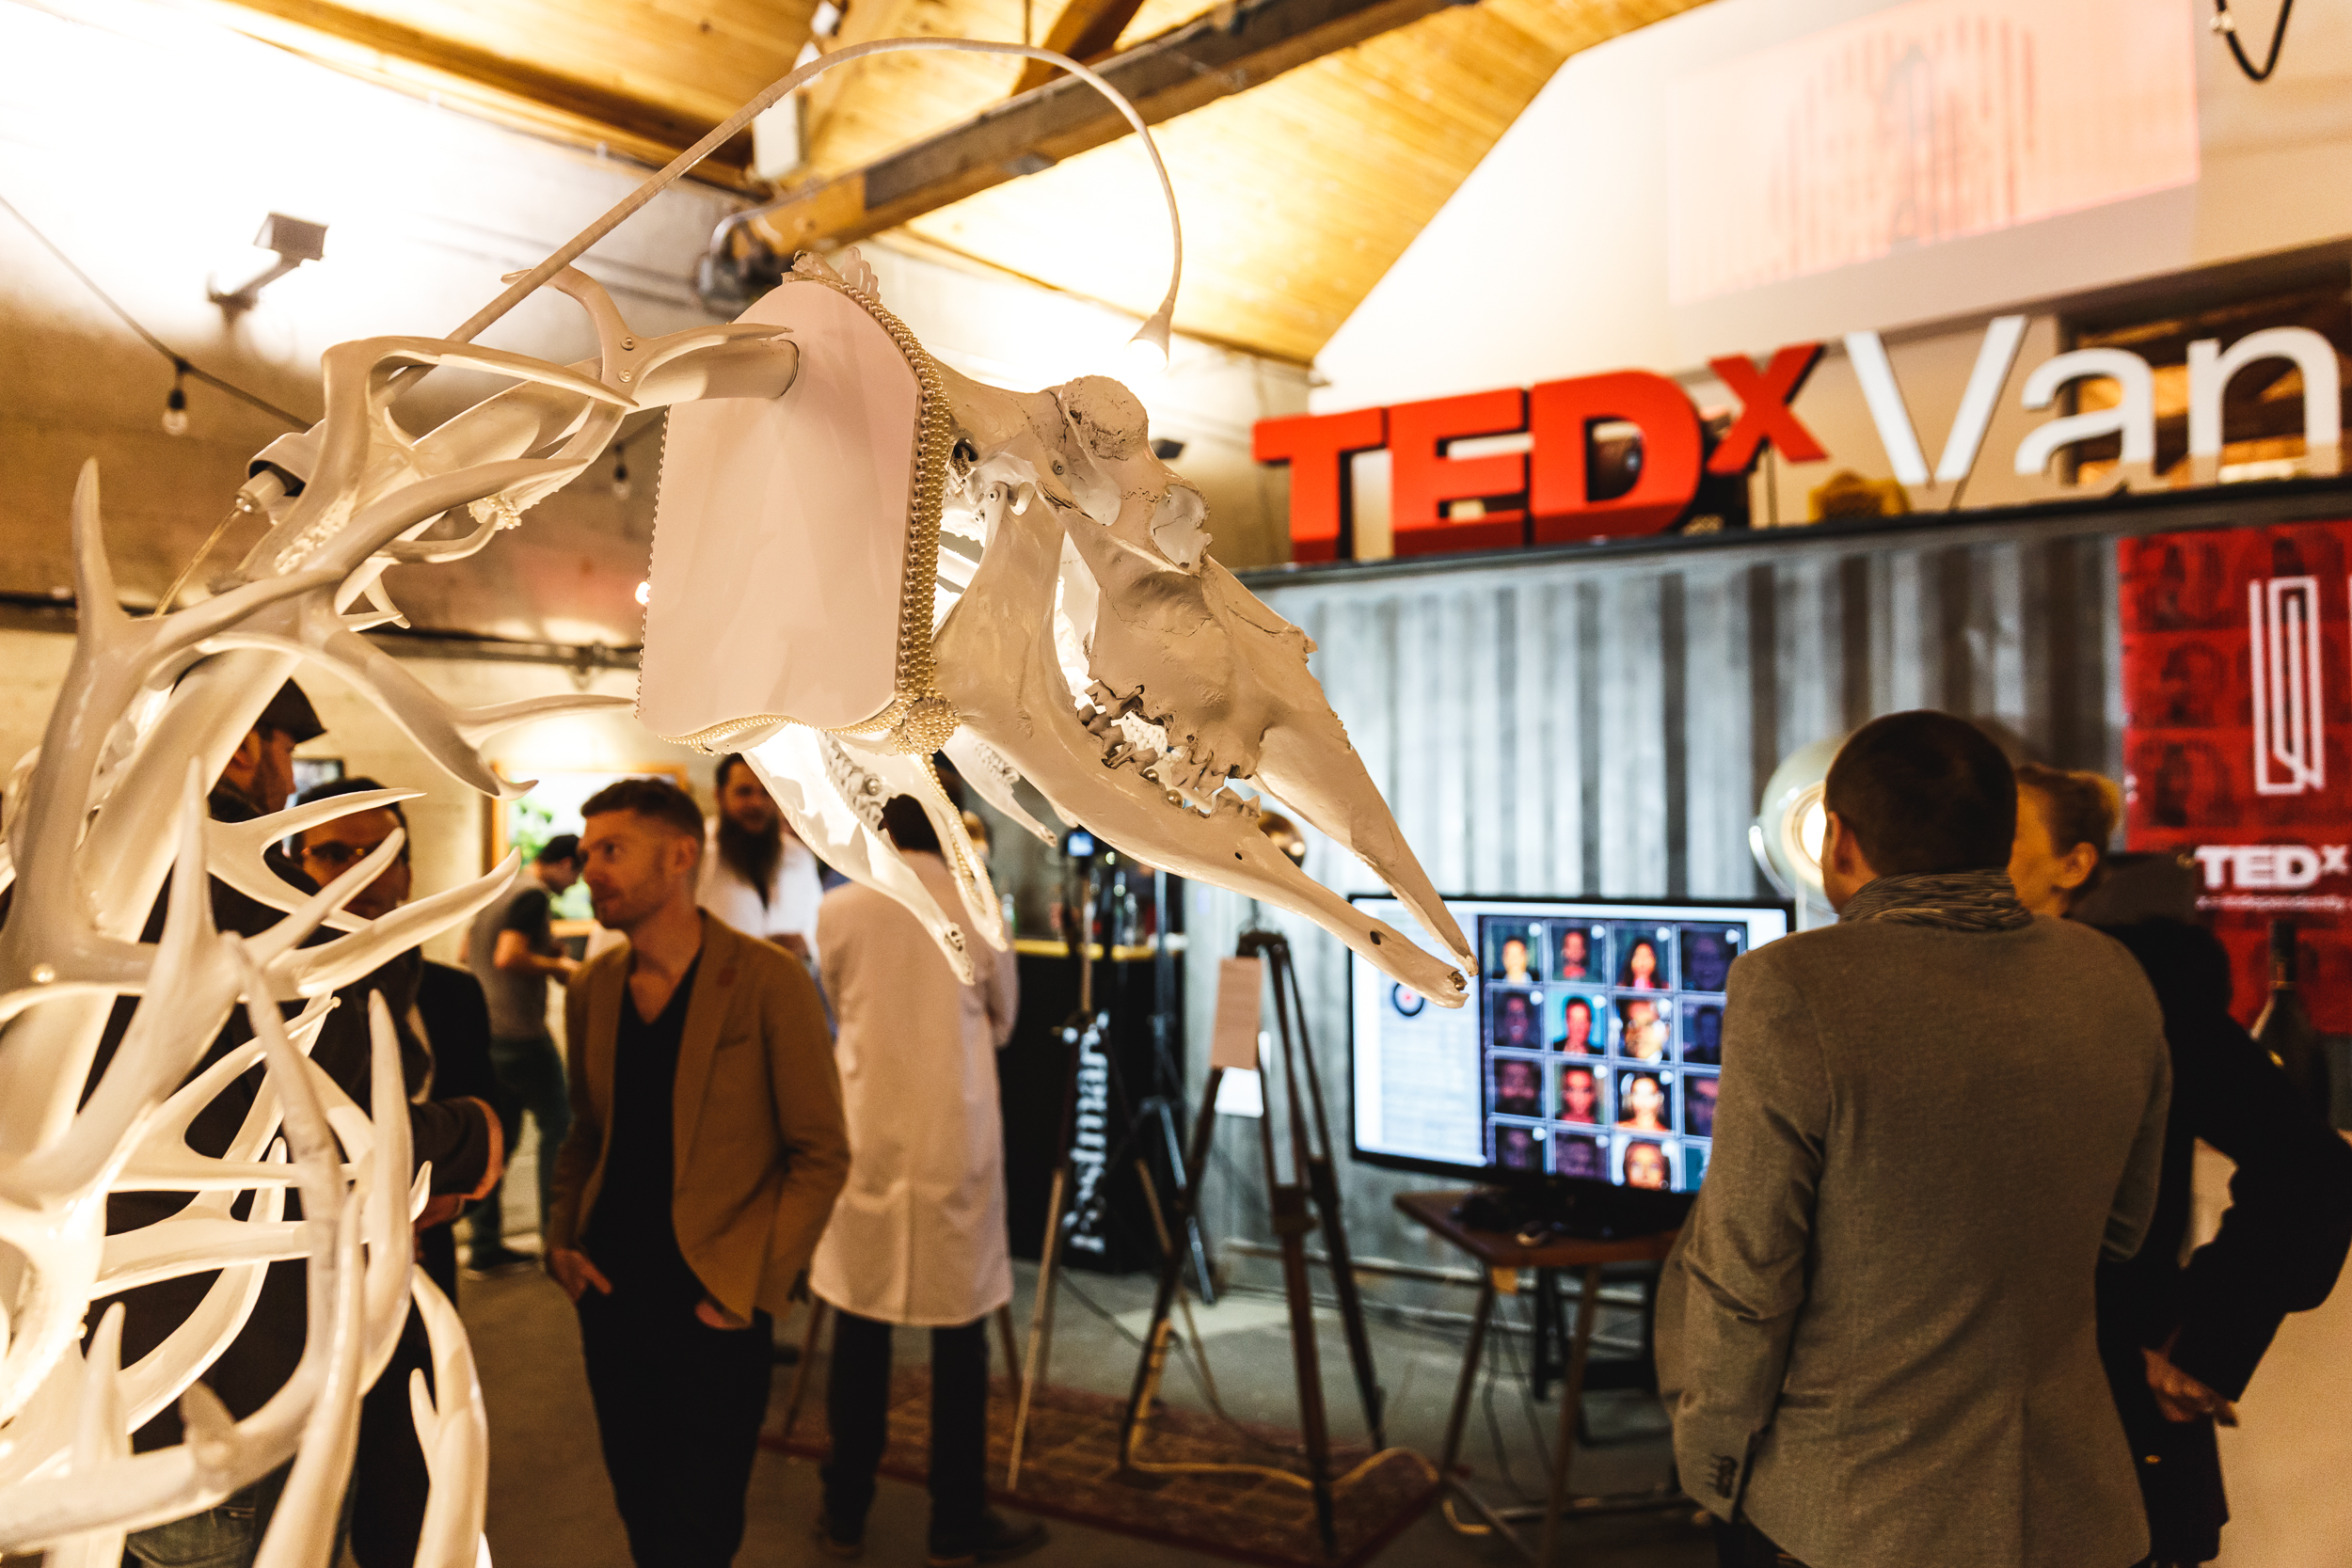 TED-Art-Vancouver-image2.jpg